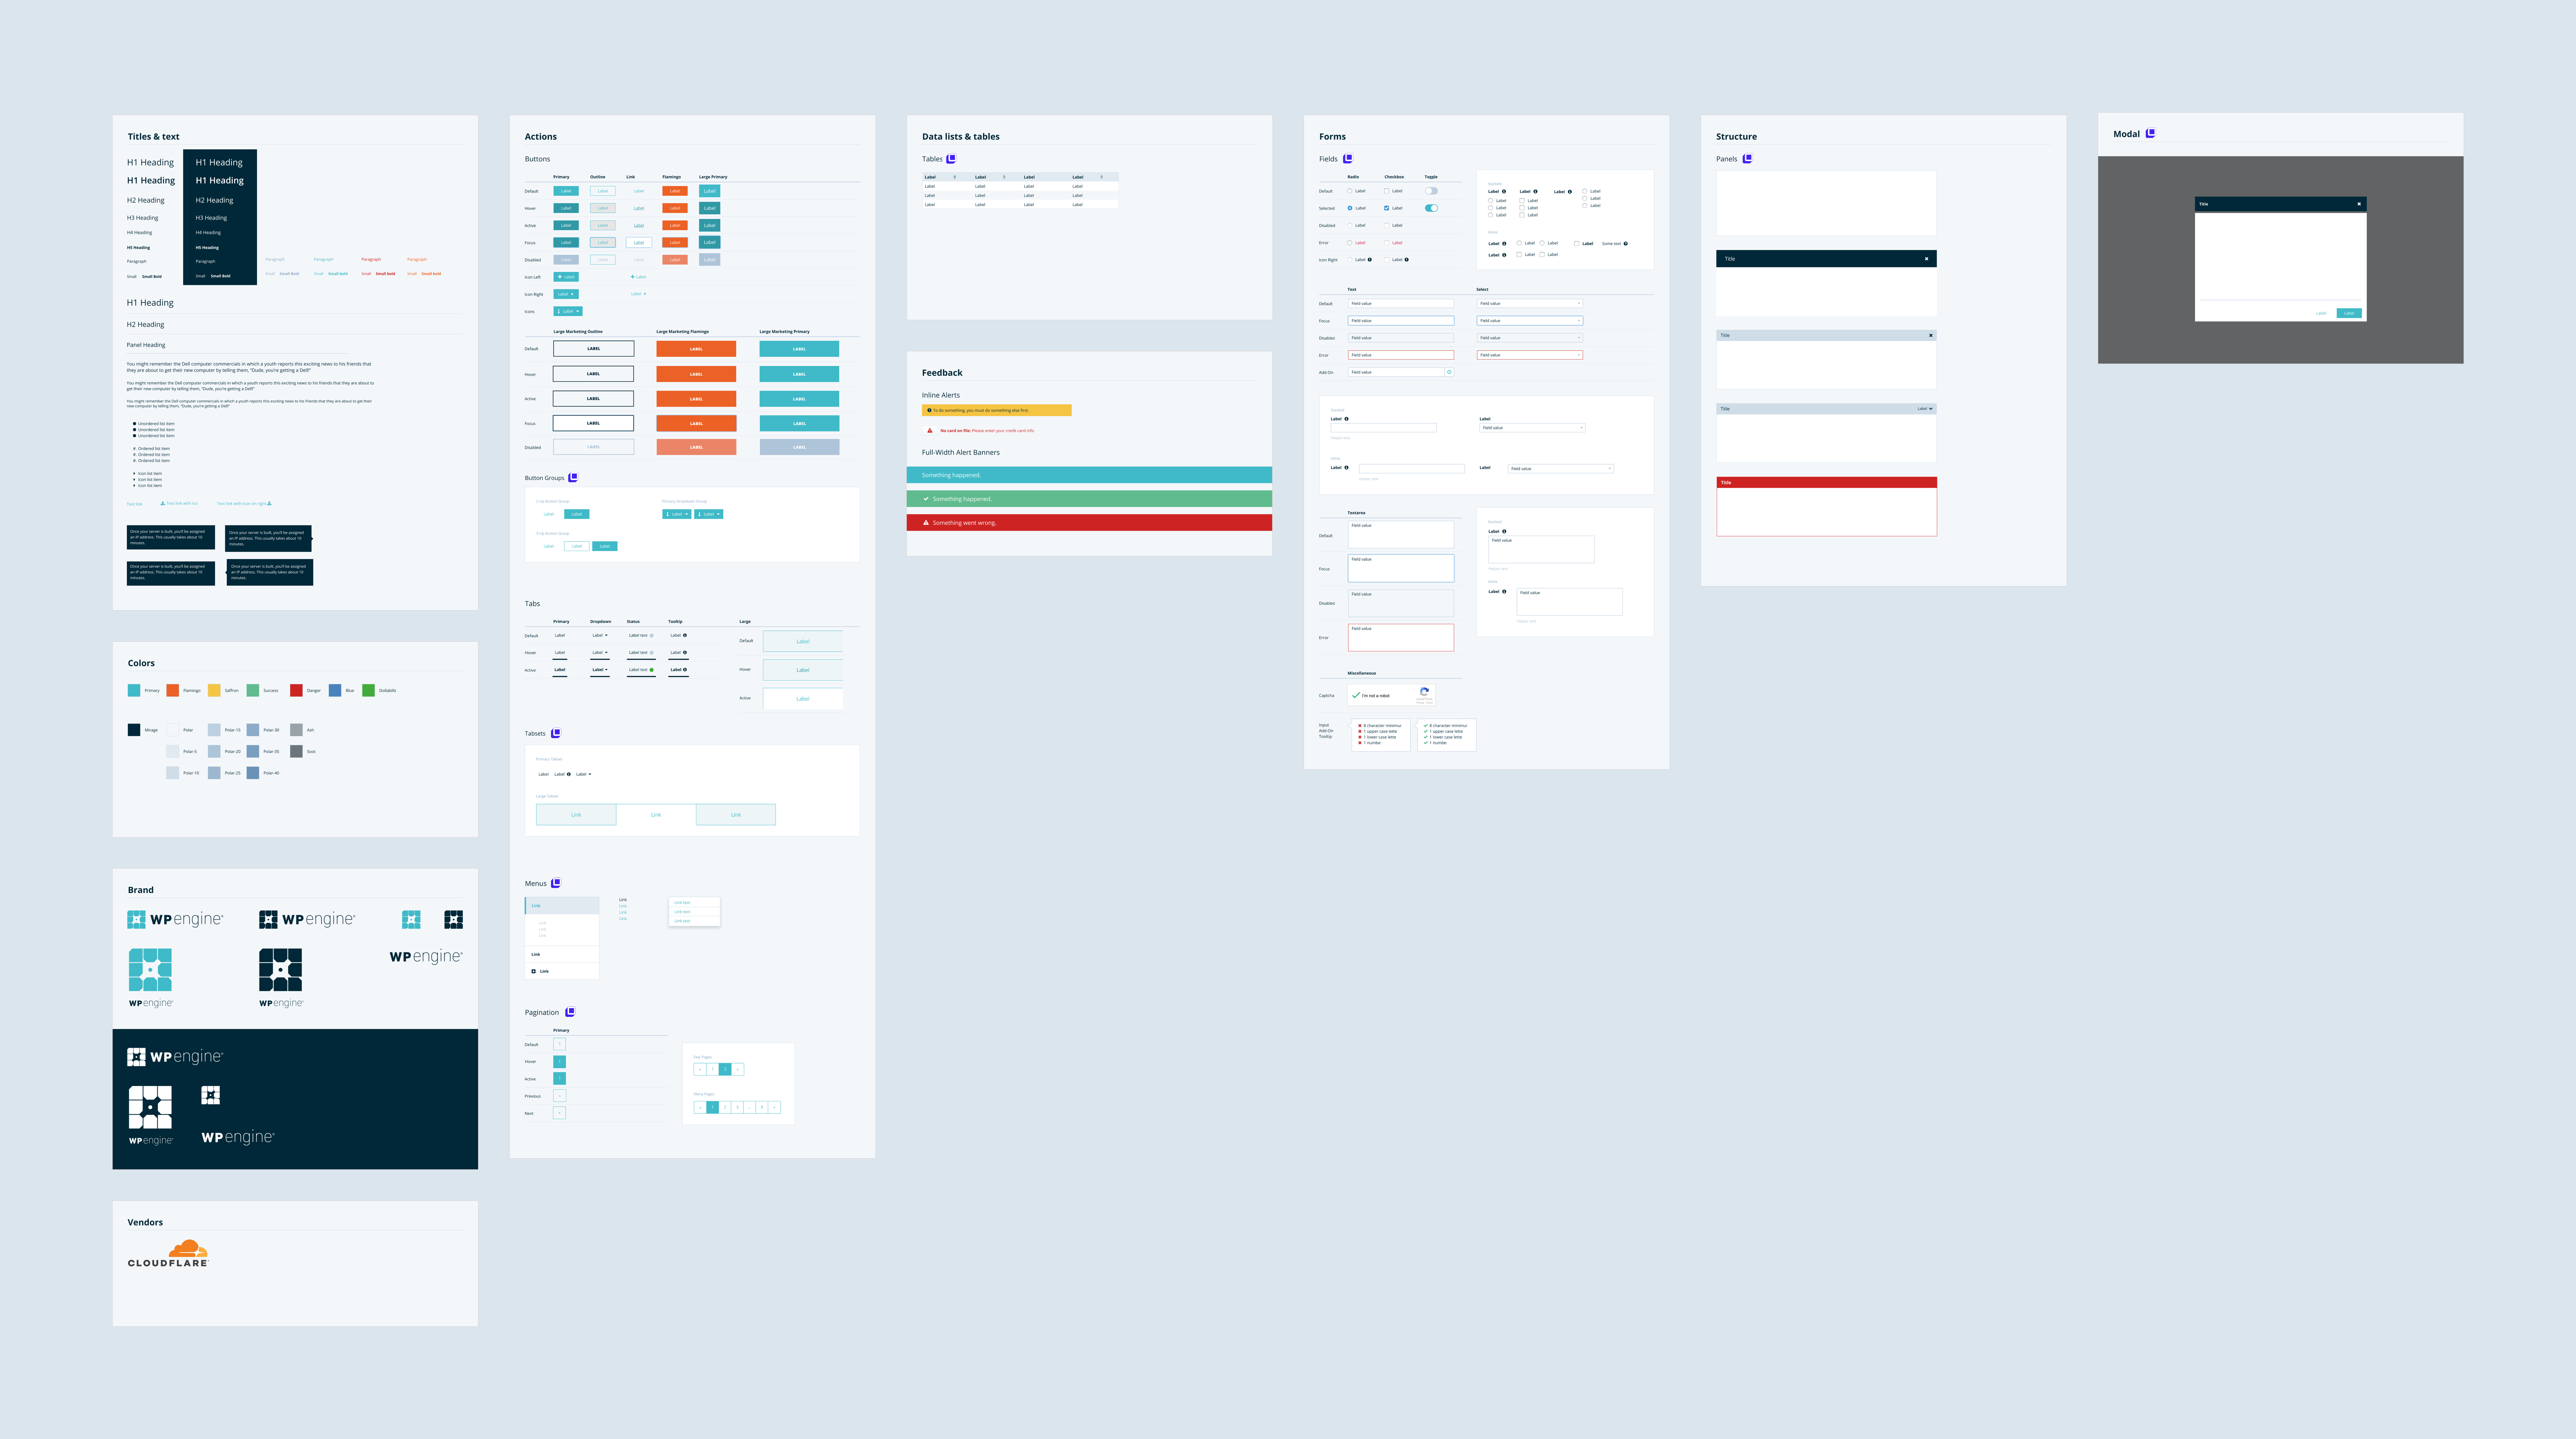 Artboards from WP Engine's Sketch UI kit